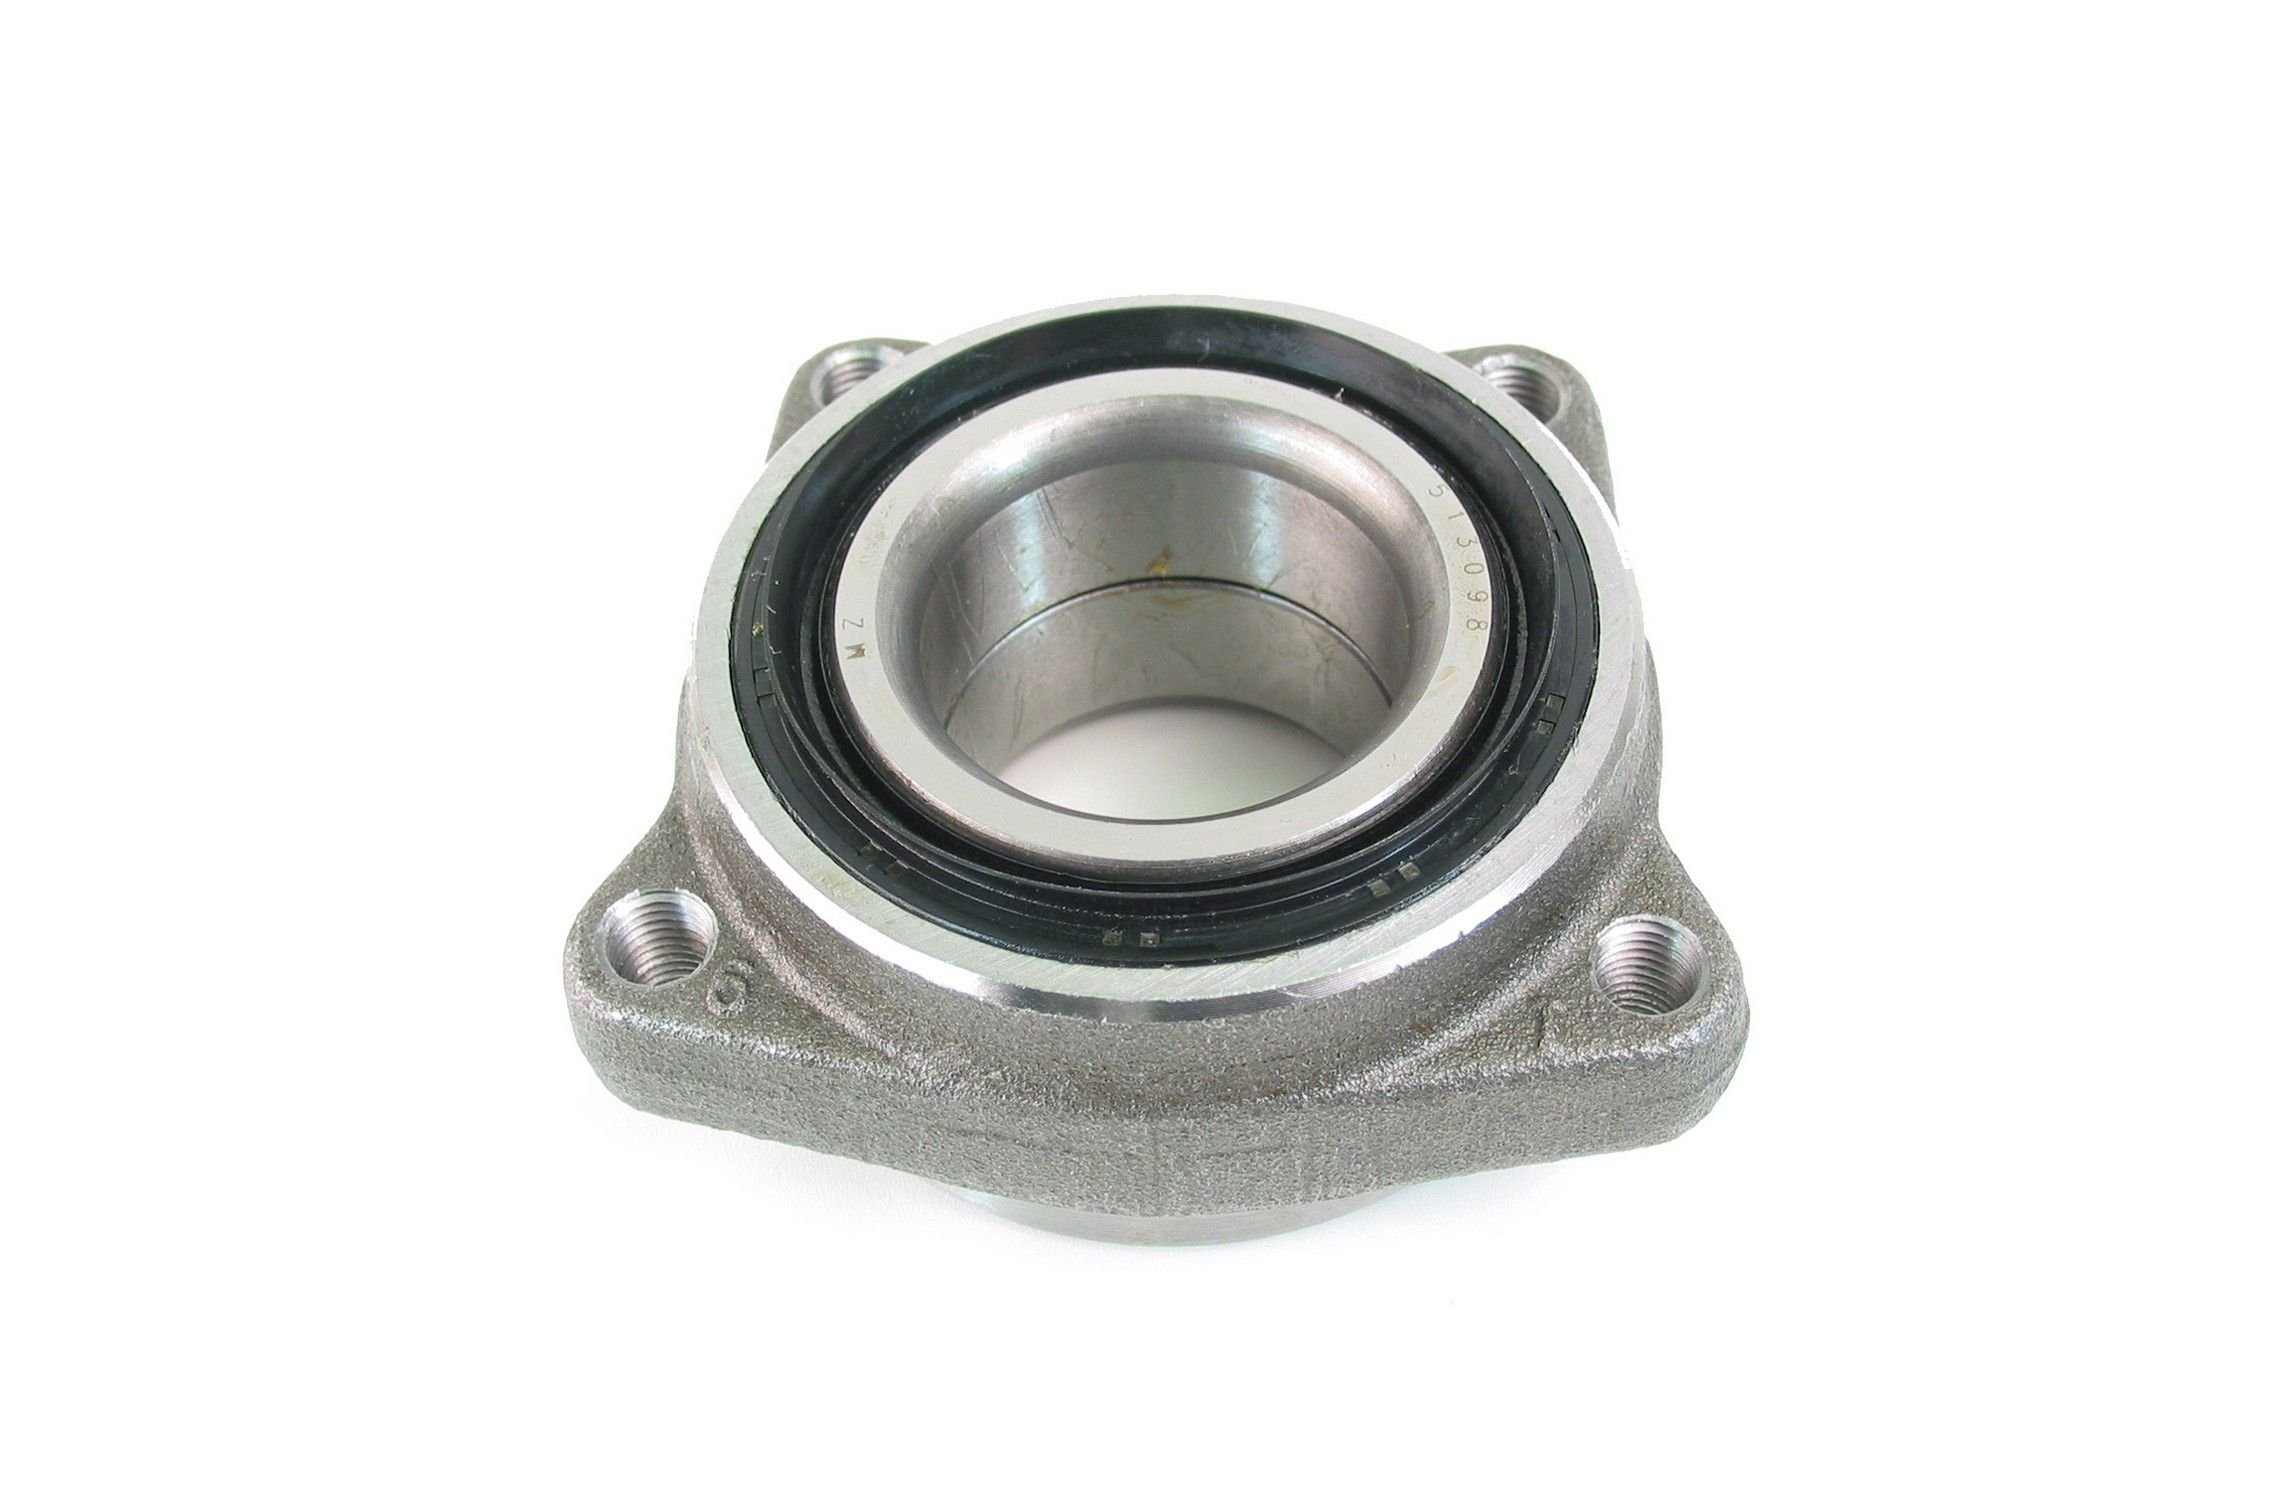 1999 Acura CL Wheel Bearing and Hub Assembly - Front 4 Cyl 2.3L (Mevotech  H513098)